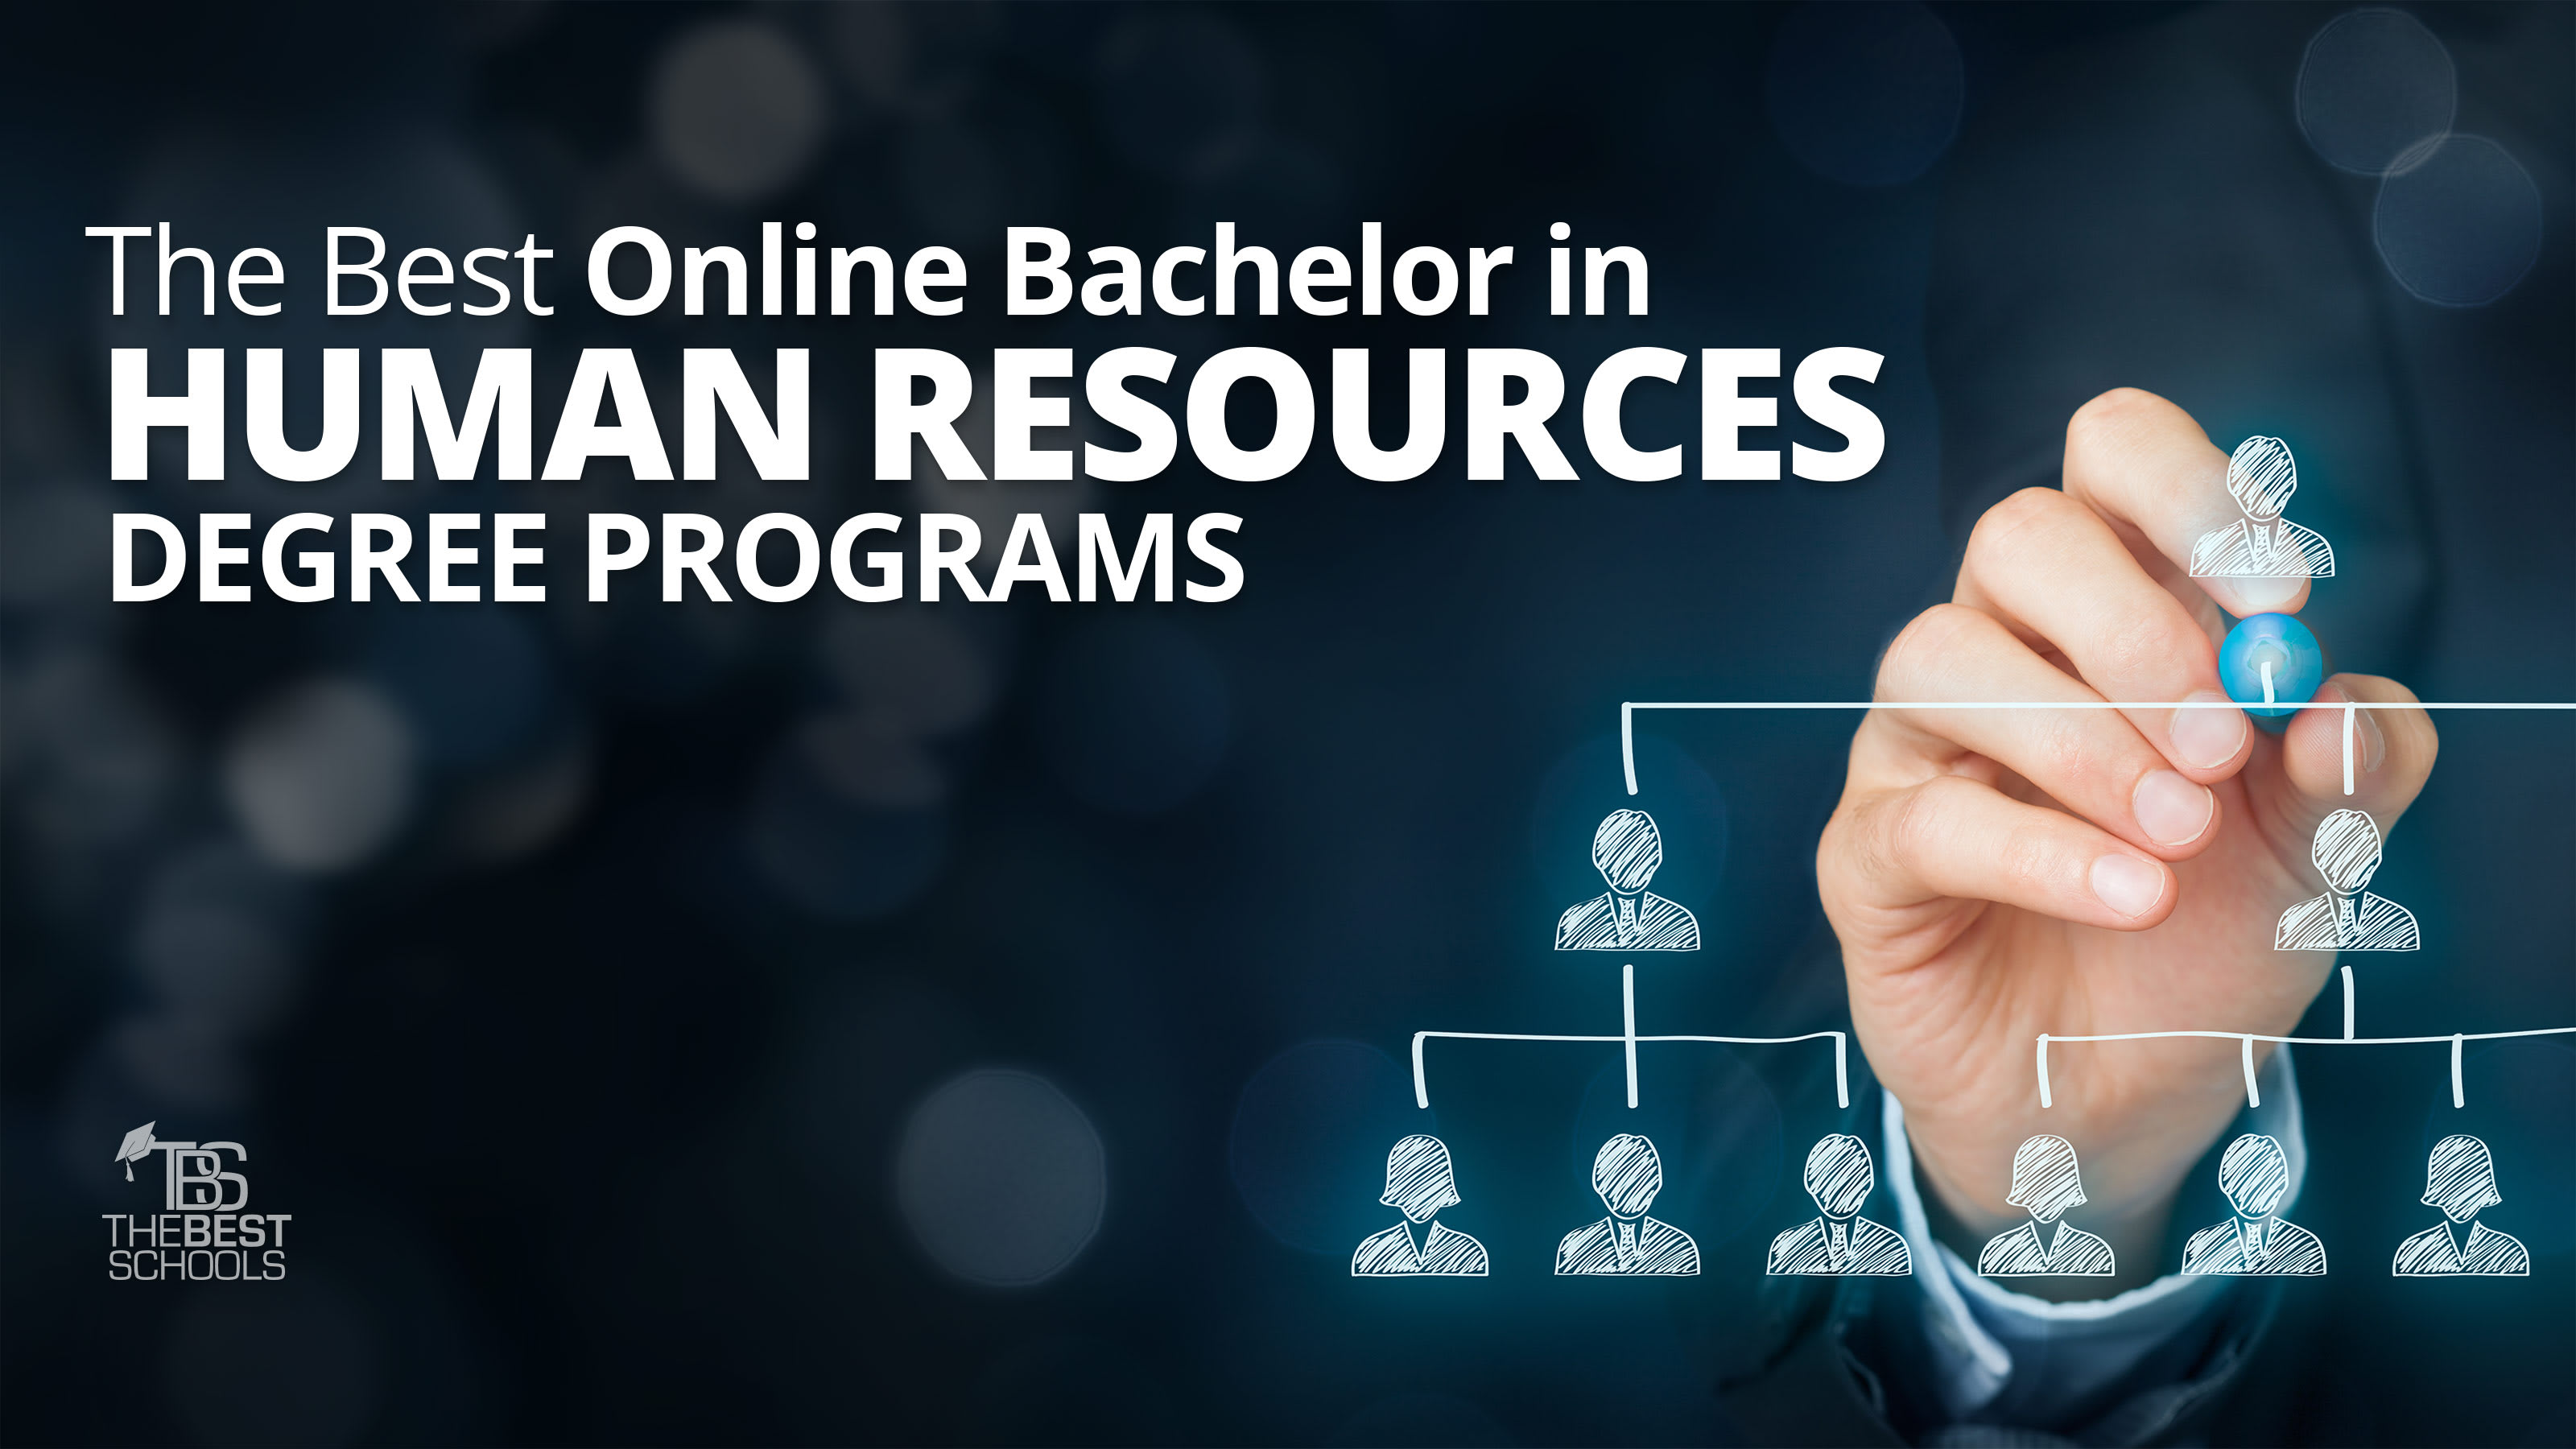 The Best Online Bachelor in Human Resources Degree Programs